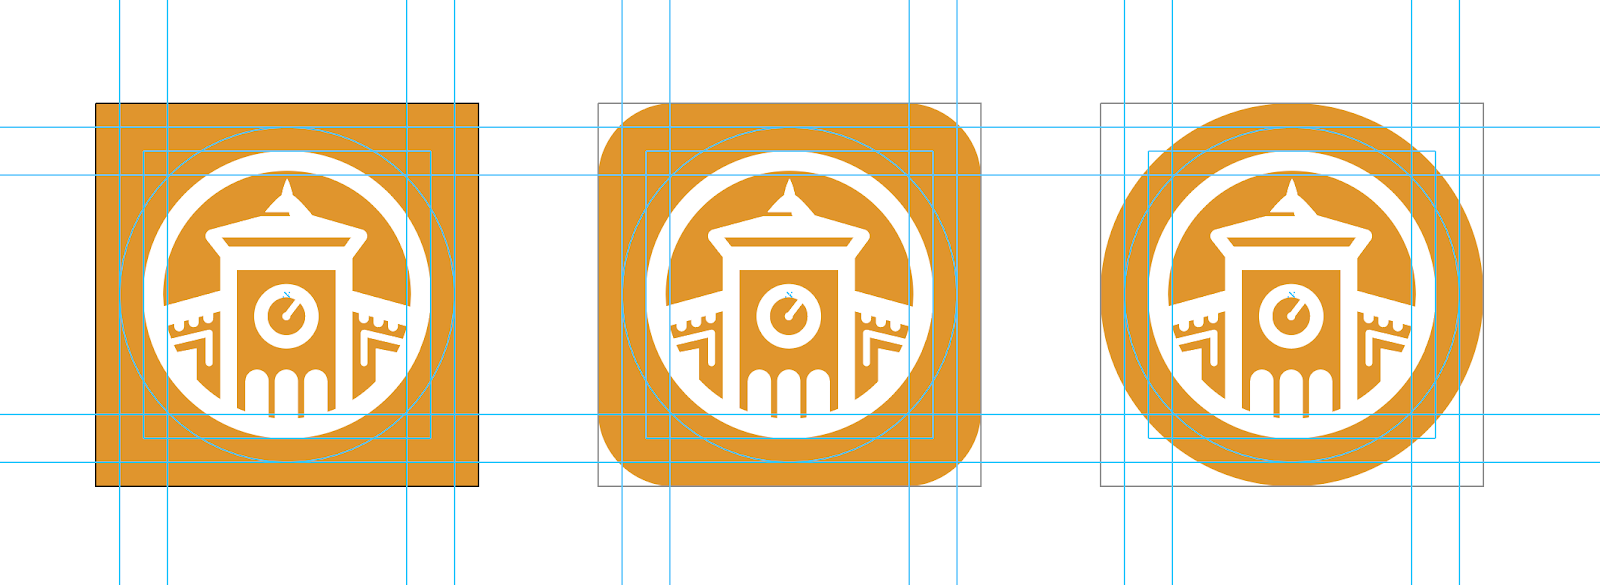 Example of icon in square, rounded corner, and circle formats